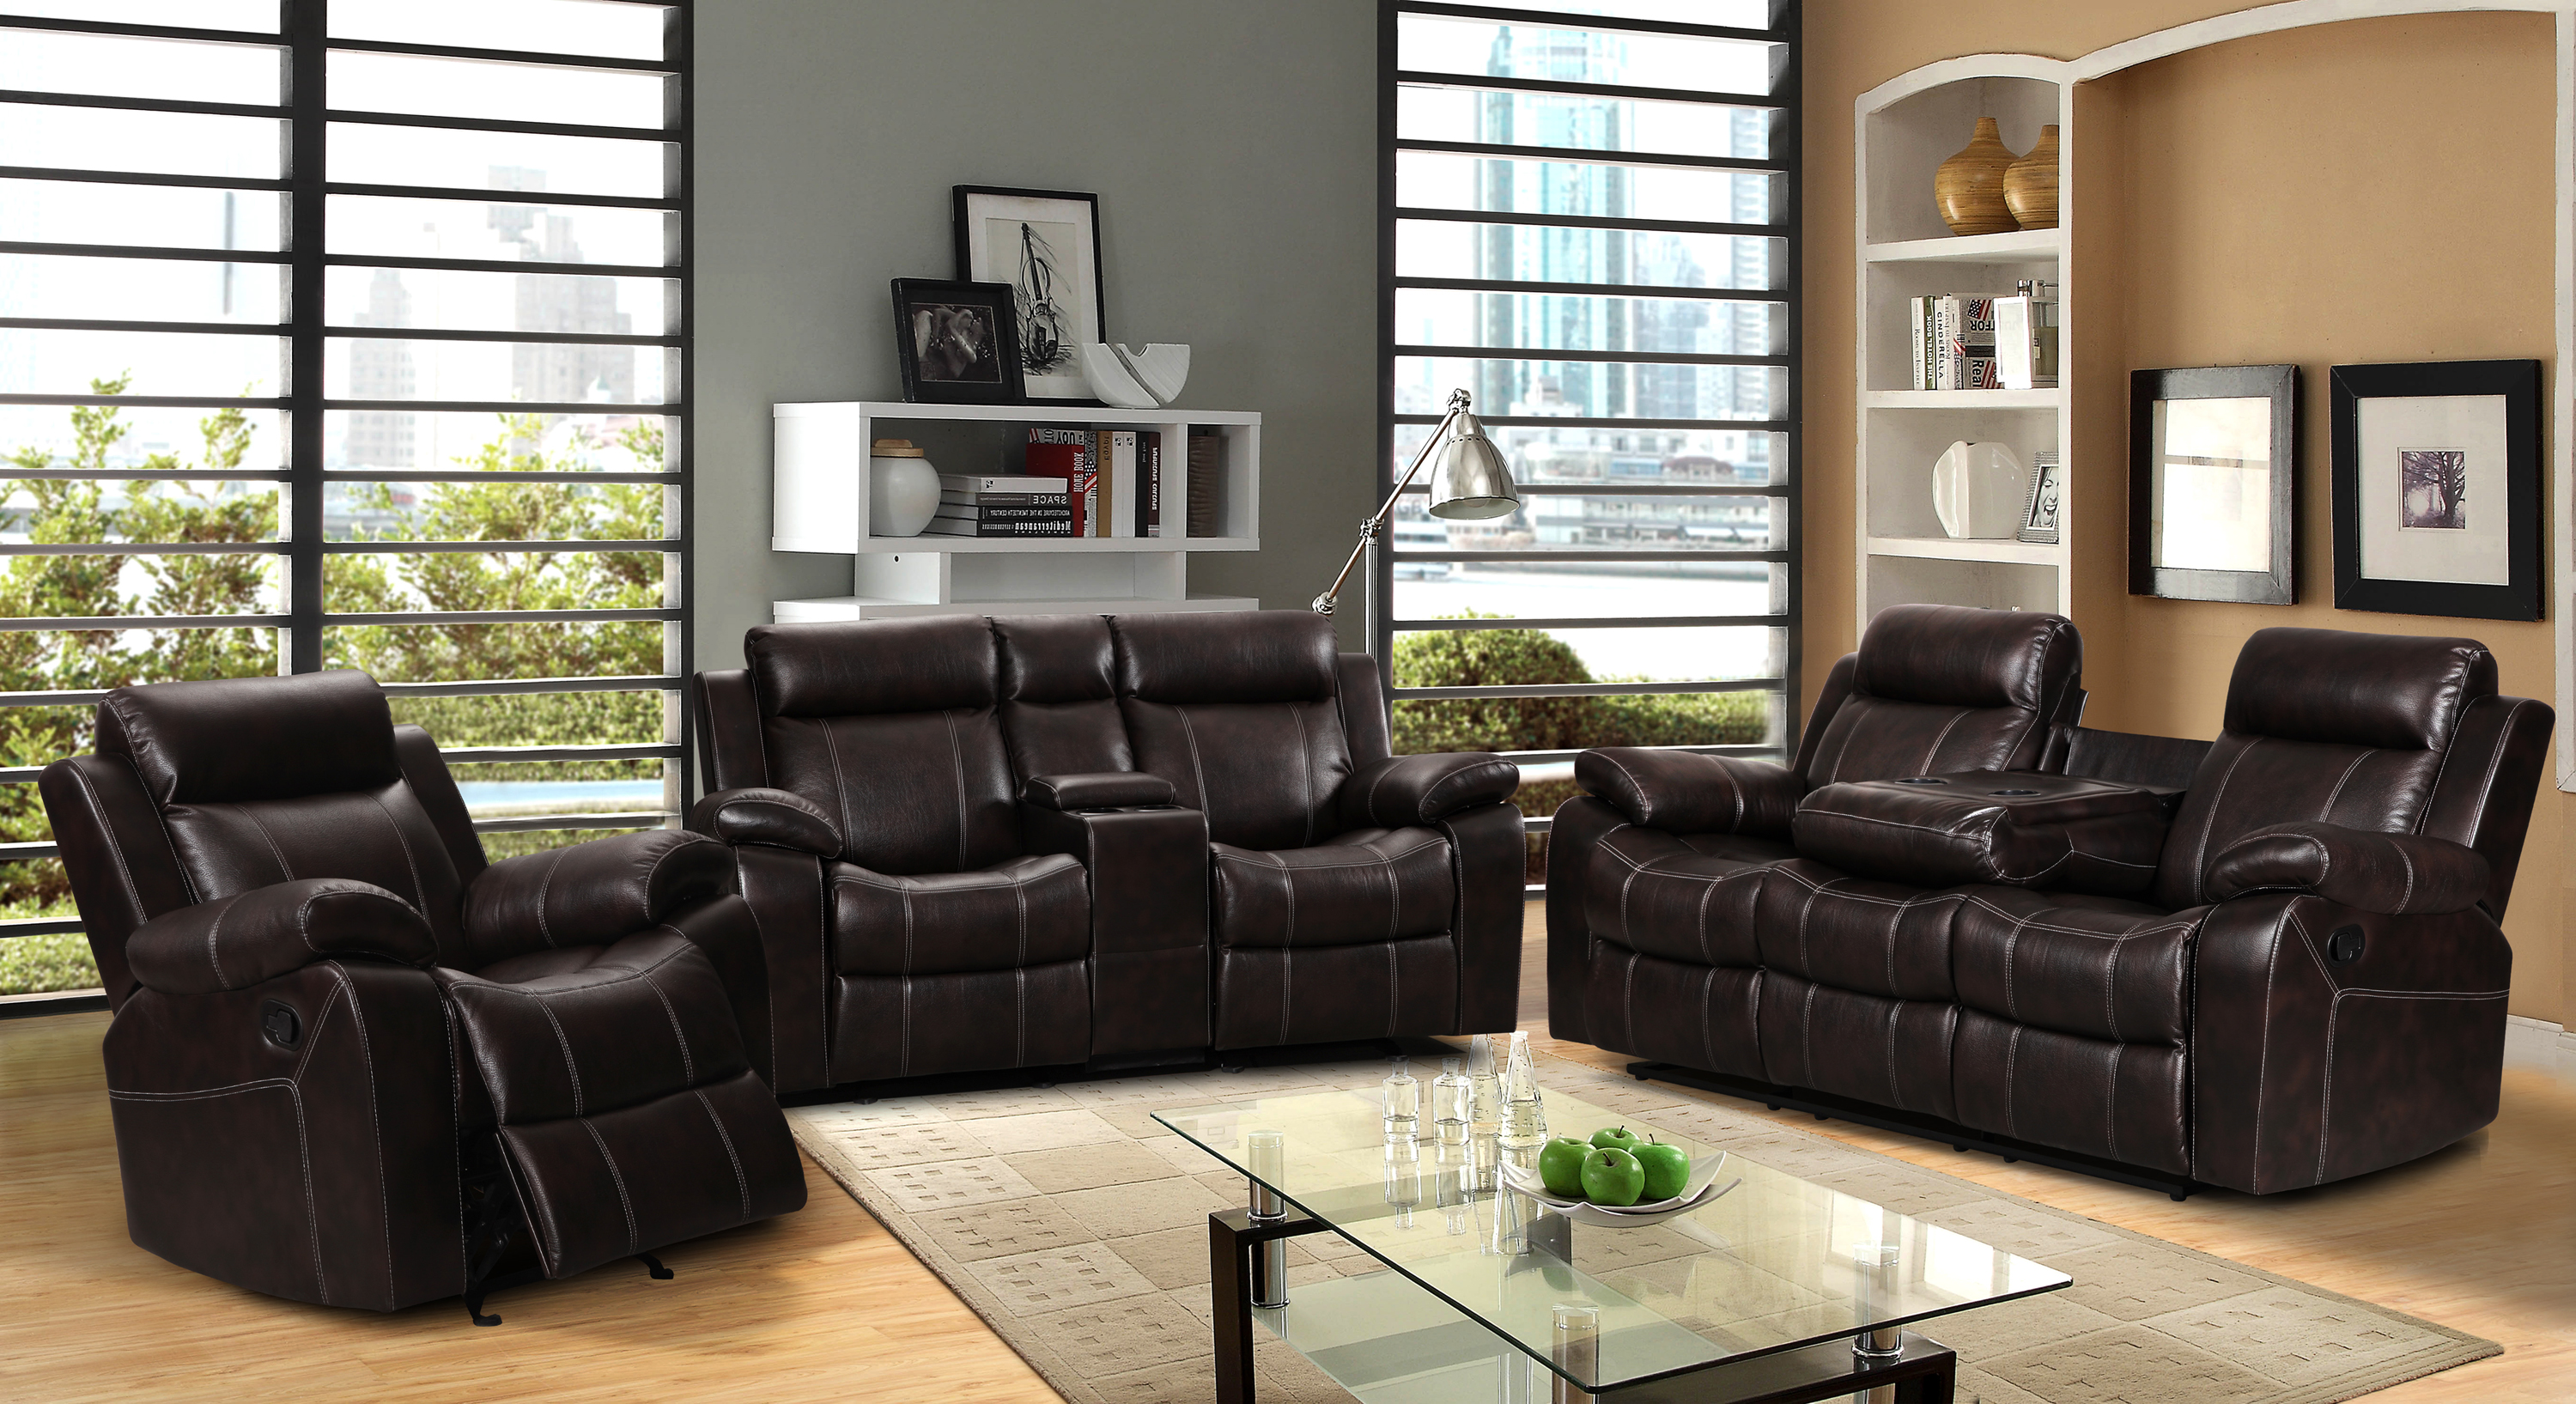 Vivienne Dark Brown Leather Air 3 pc Reclining Sofa set with Gliding Loveseat and Chair  sc 1 st  Walmart & Vivienne Dark Brown Leather Air 3 pc Reclining Sofa set with ... islam-shia.org